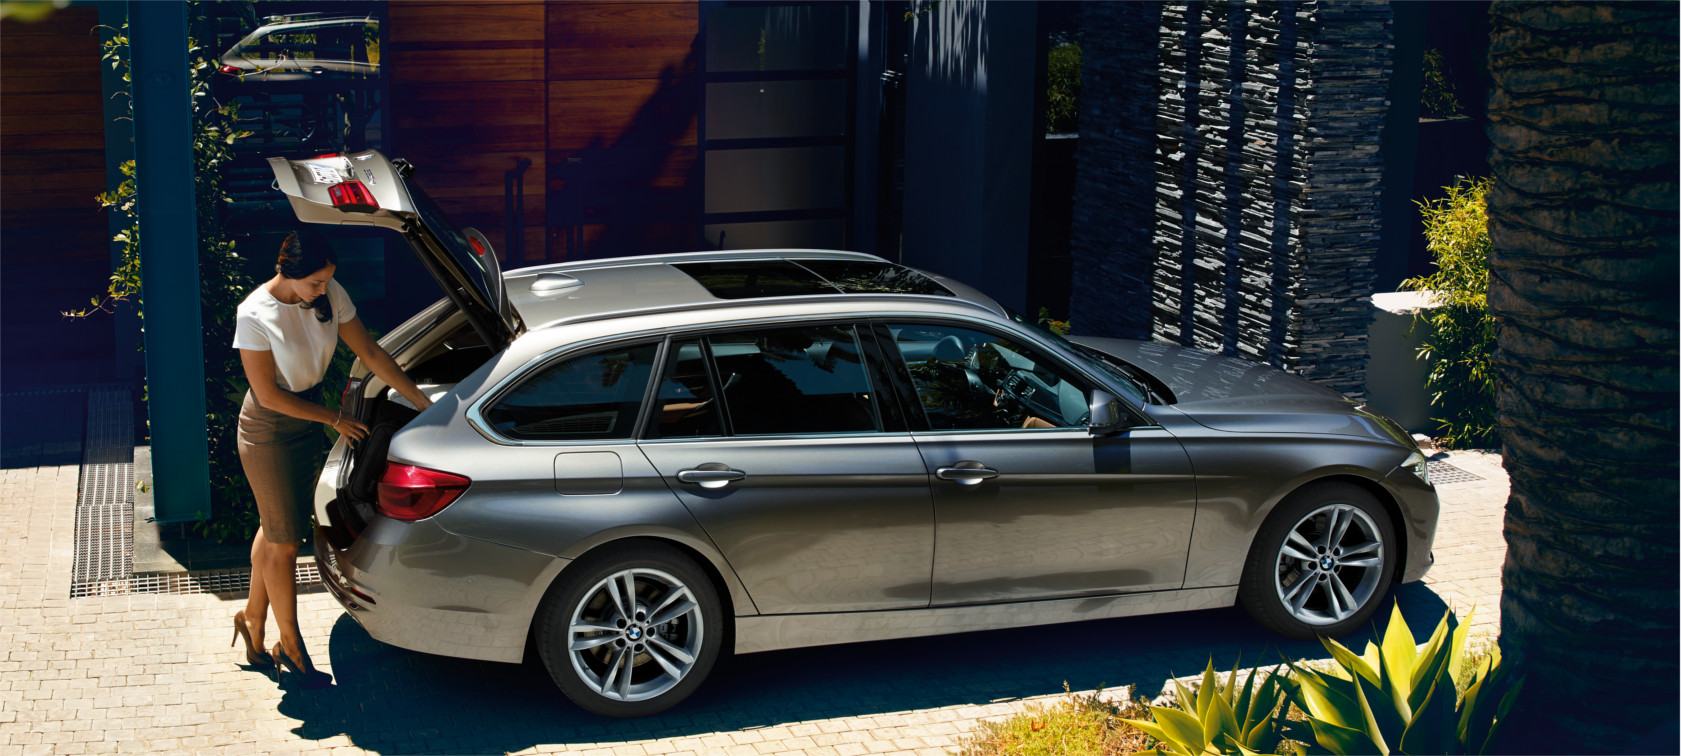 BMW 3 Series: comfortable and safe touring parked by the house.